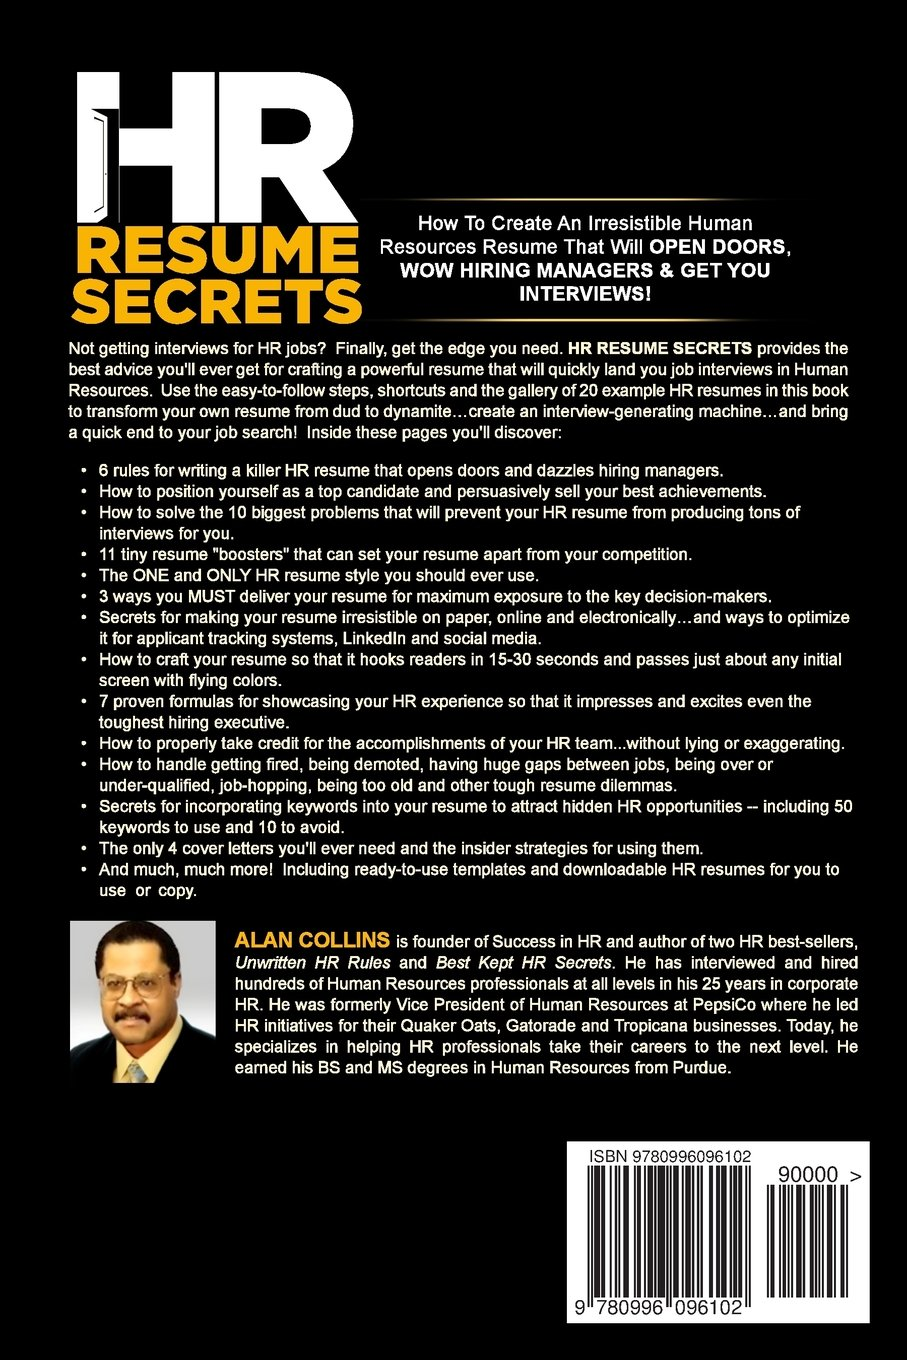 HR Resume Secrets: How To Create An Irresistible Human Resources ...